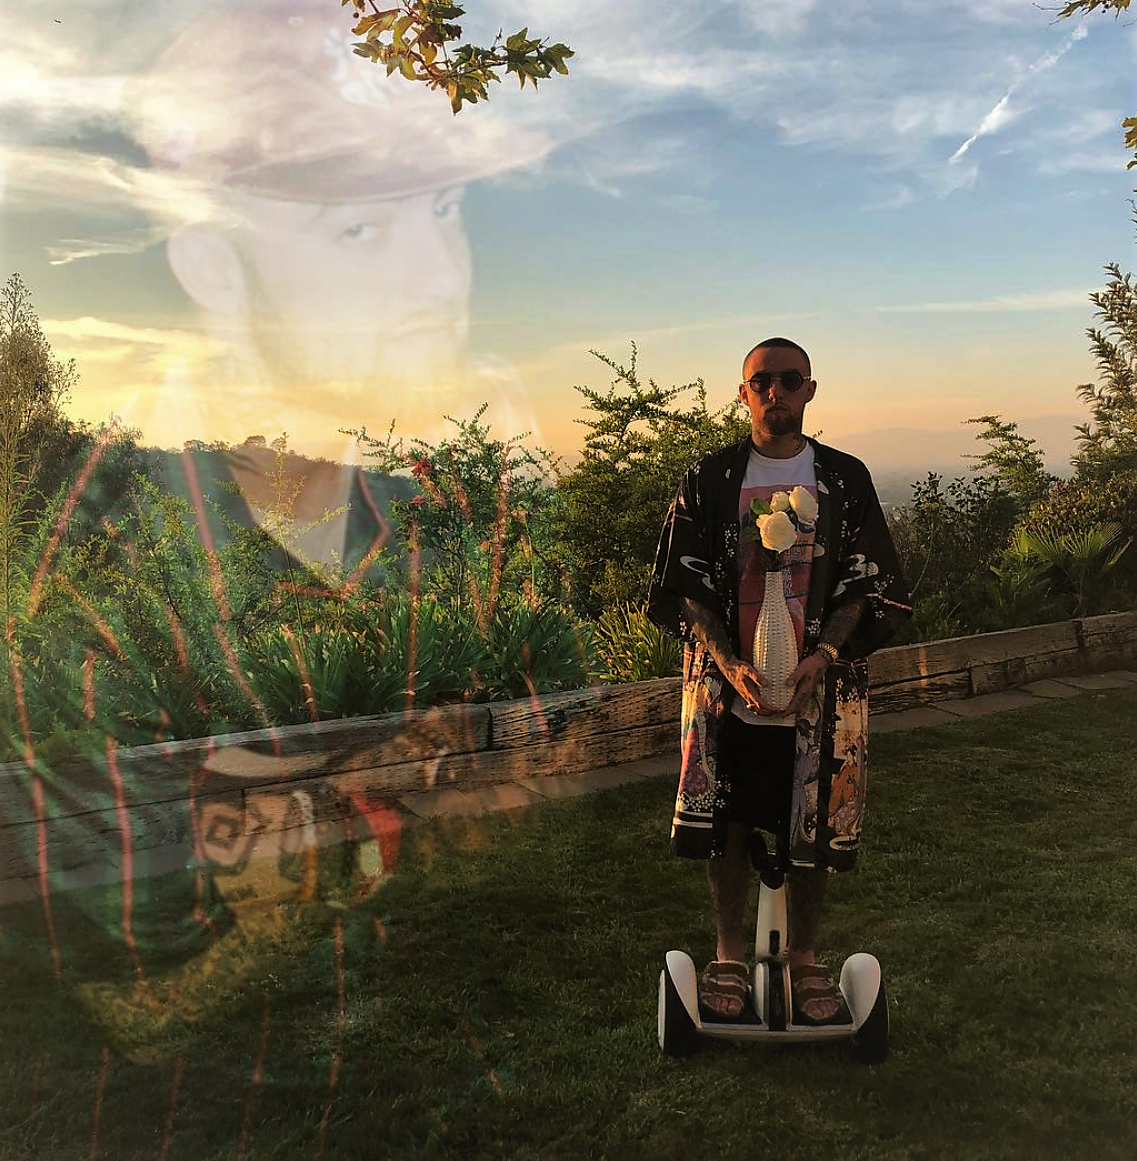 Mac Miller, 92′ Til Infinity (Photos from Instagram @macmiller, Modified by Rachel Willard)